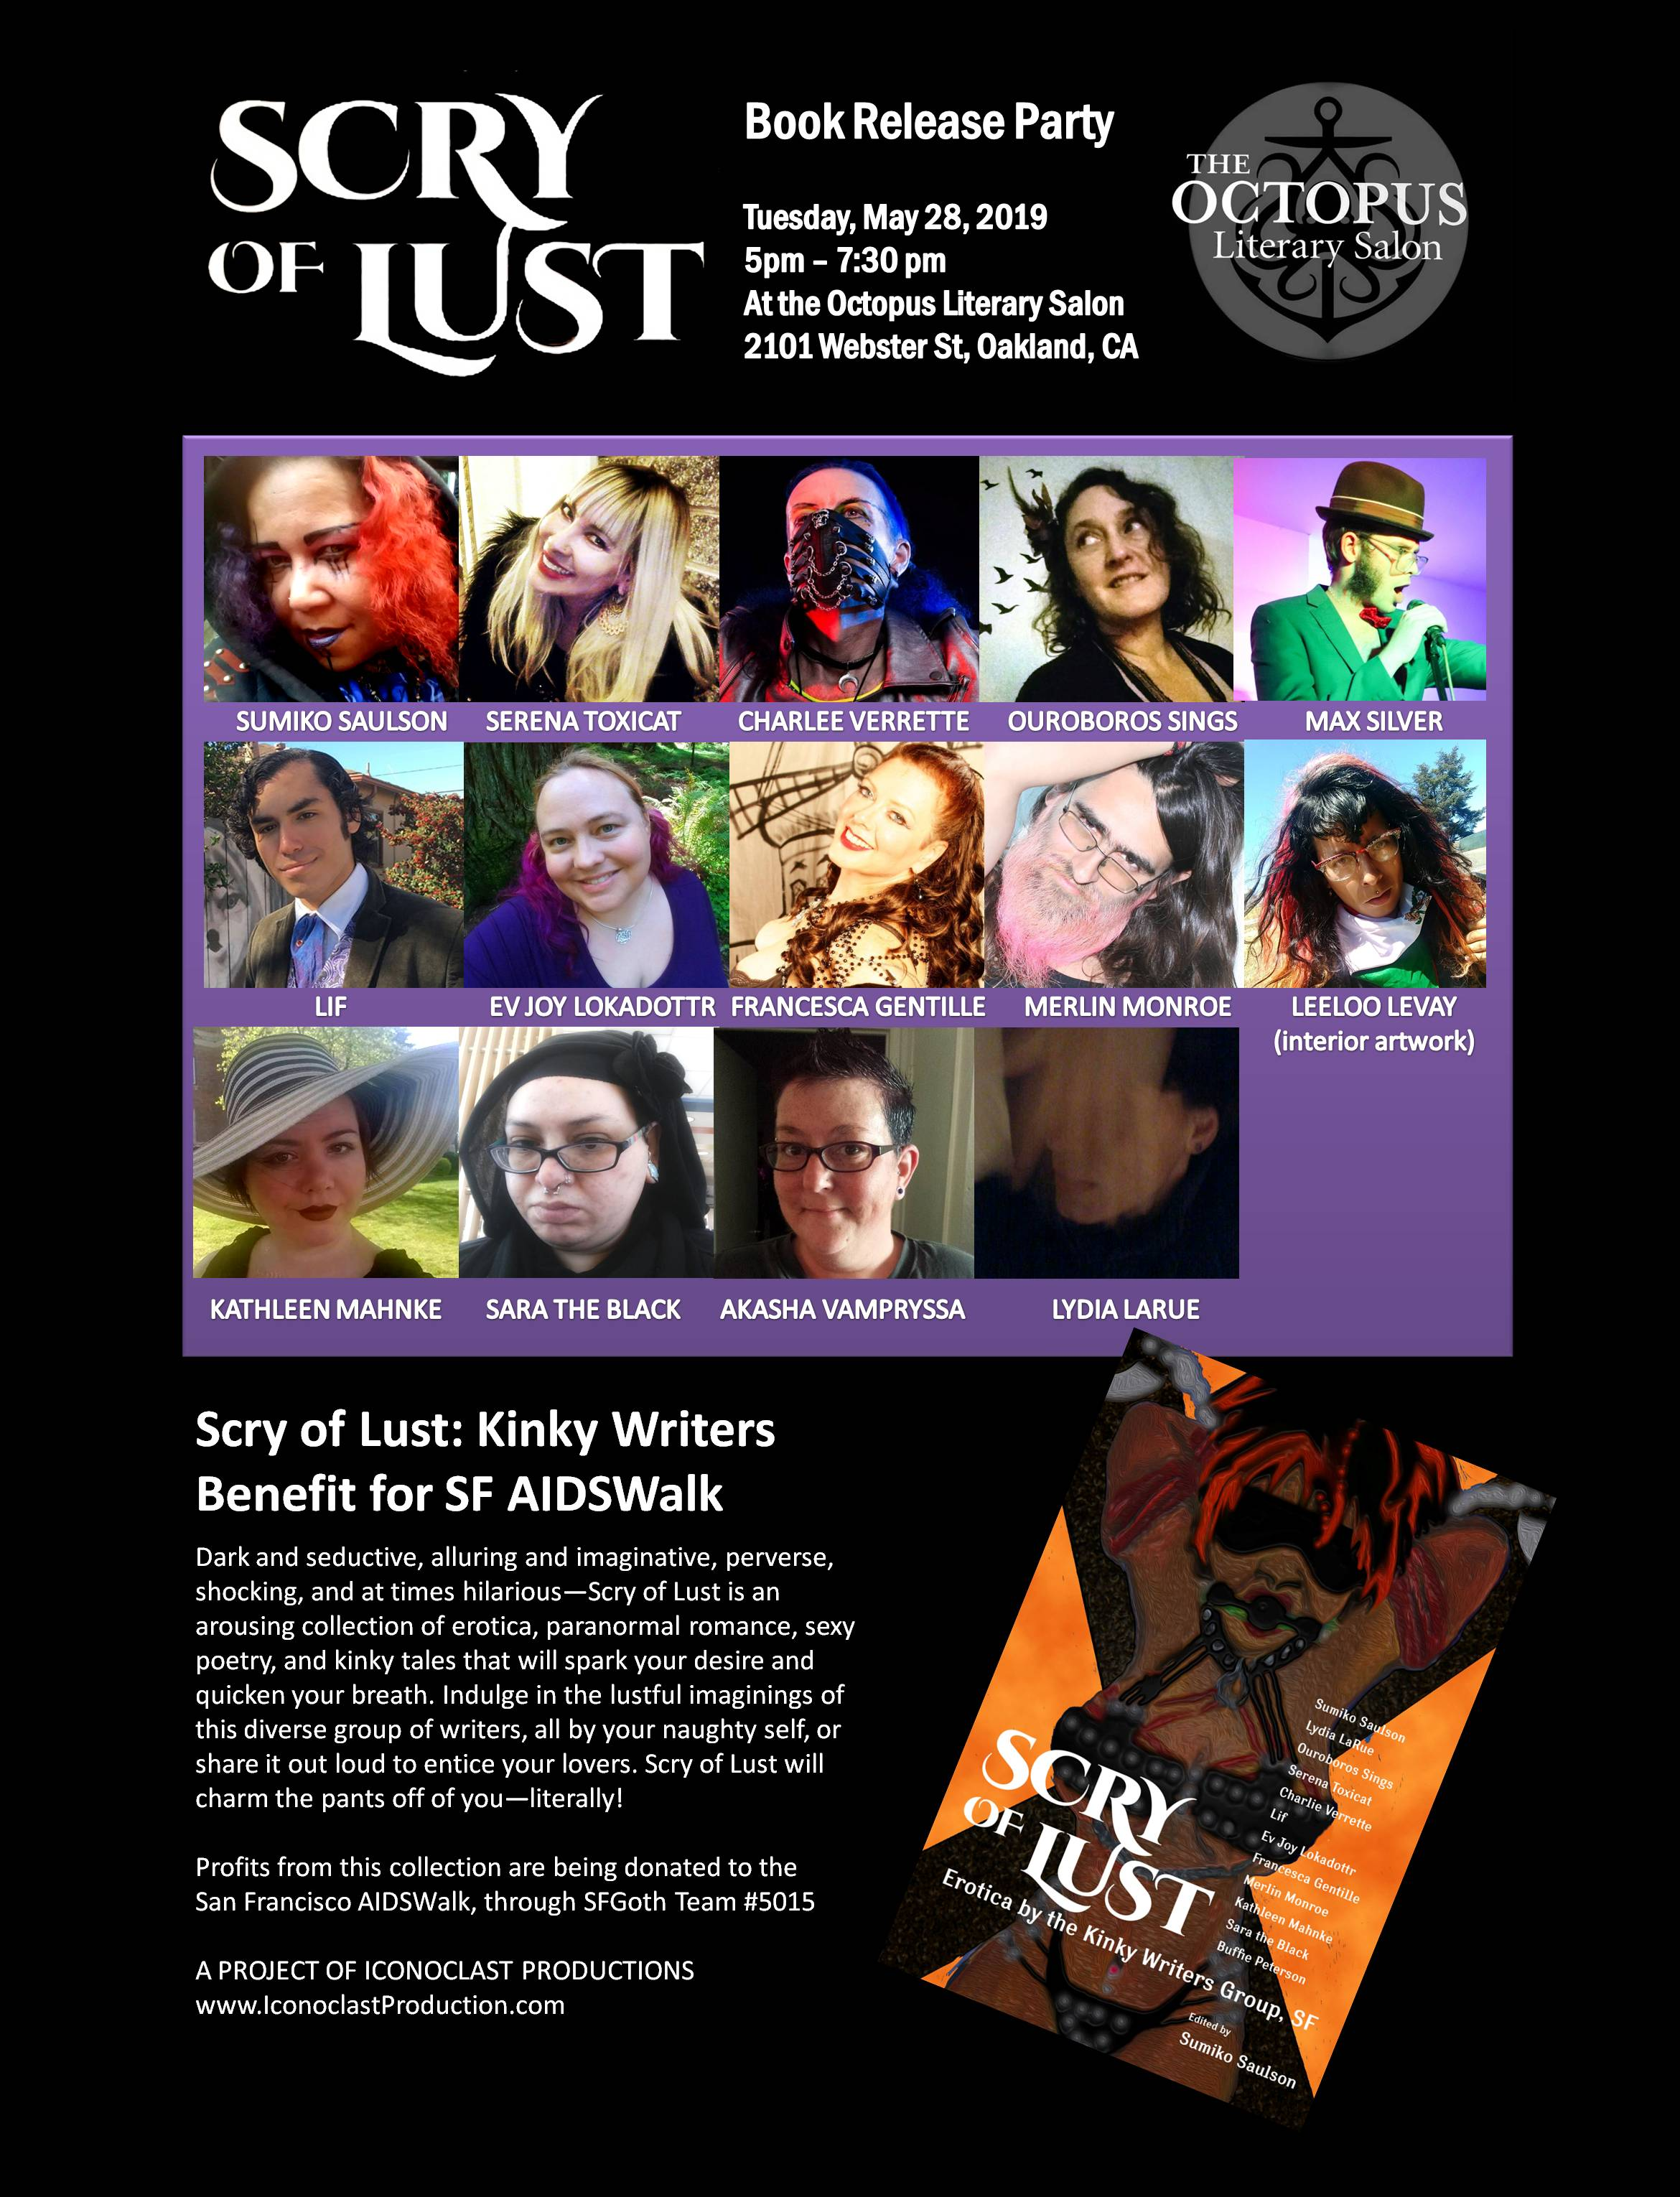 Scry of Lust event poster tabloid